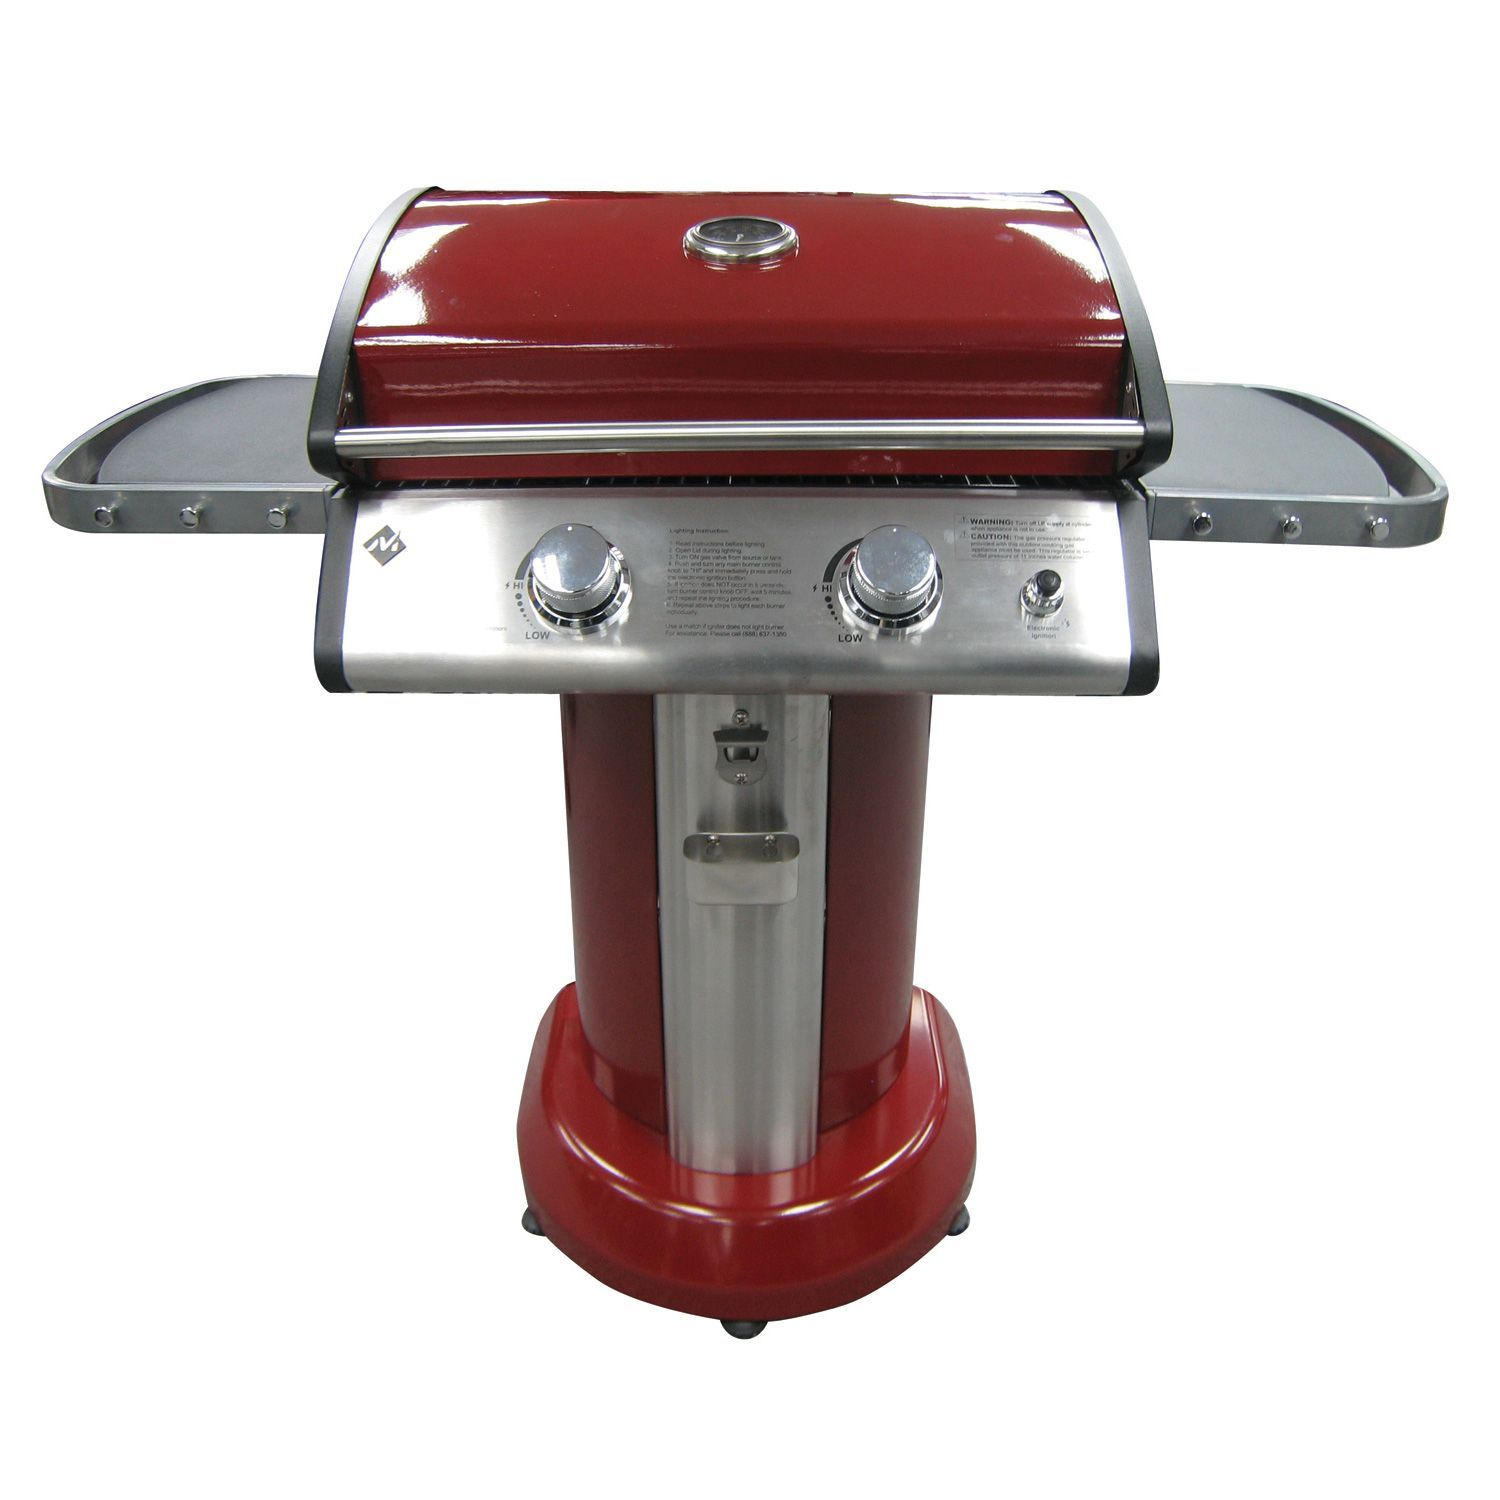 Member s Mark Red Patio Grill Sam s Club Dwelling